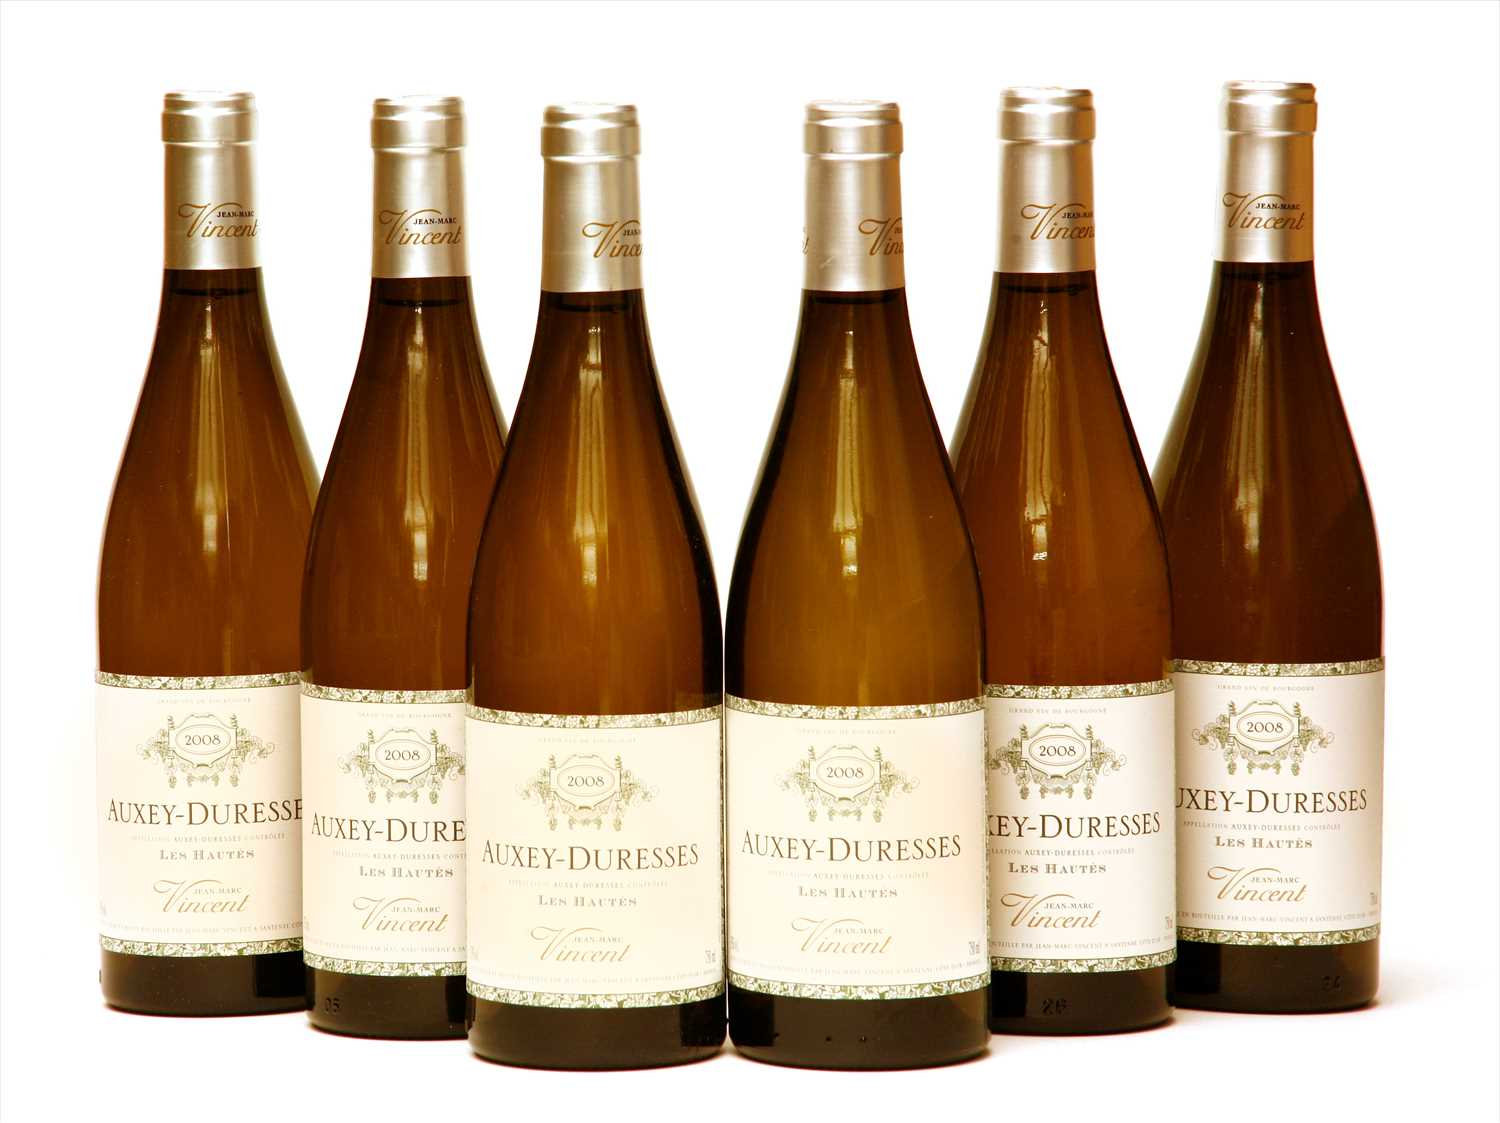 Lot 24-Jean-Marc Vincent, Auxey-Duresses, Les Hautés, 2008, six bottles (boxed)